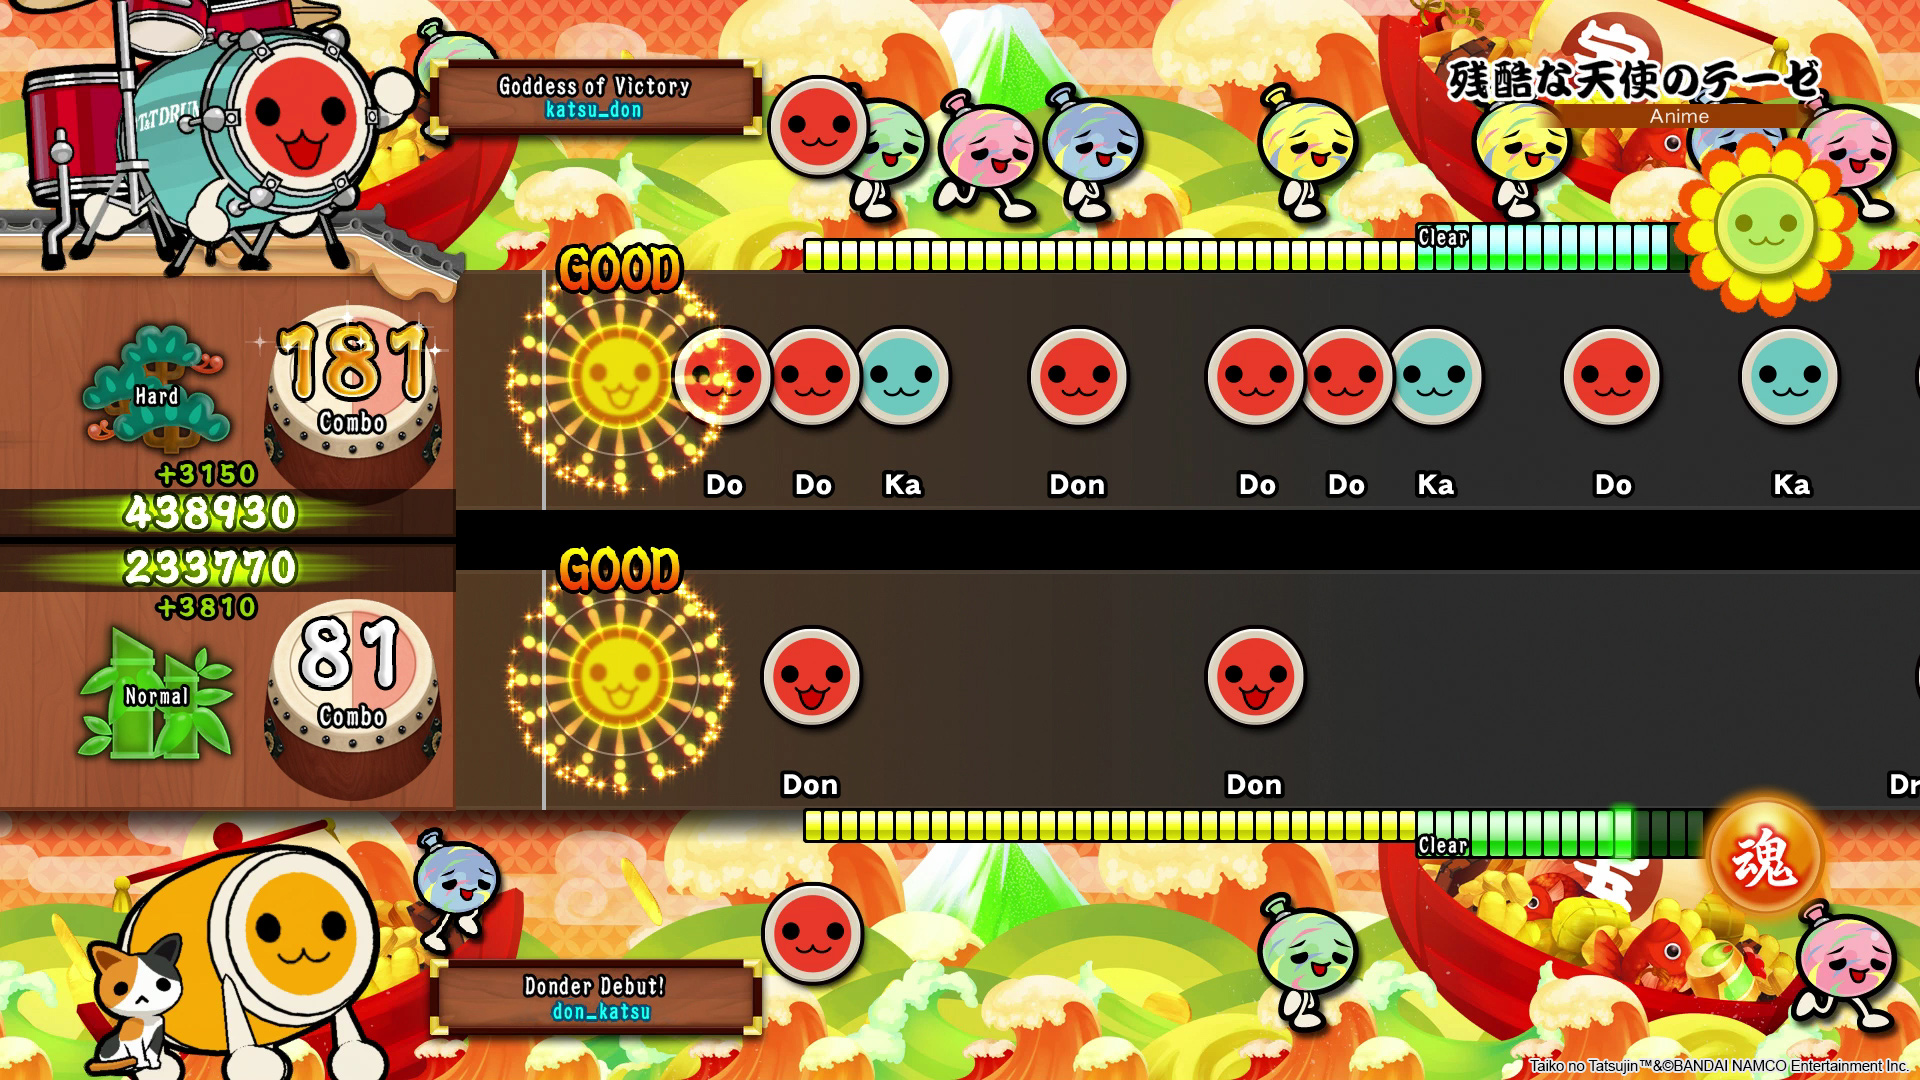 Taiko no Tatsujin: Drum Session! - screenshot 2p